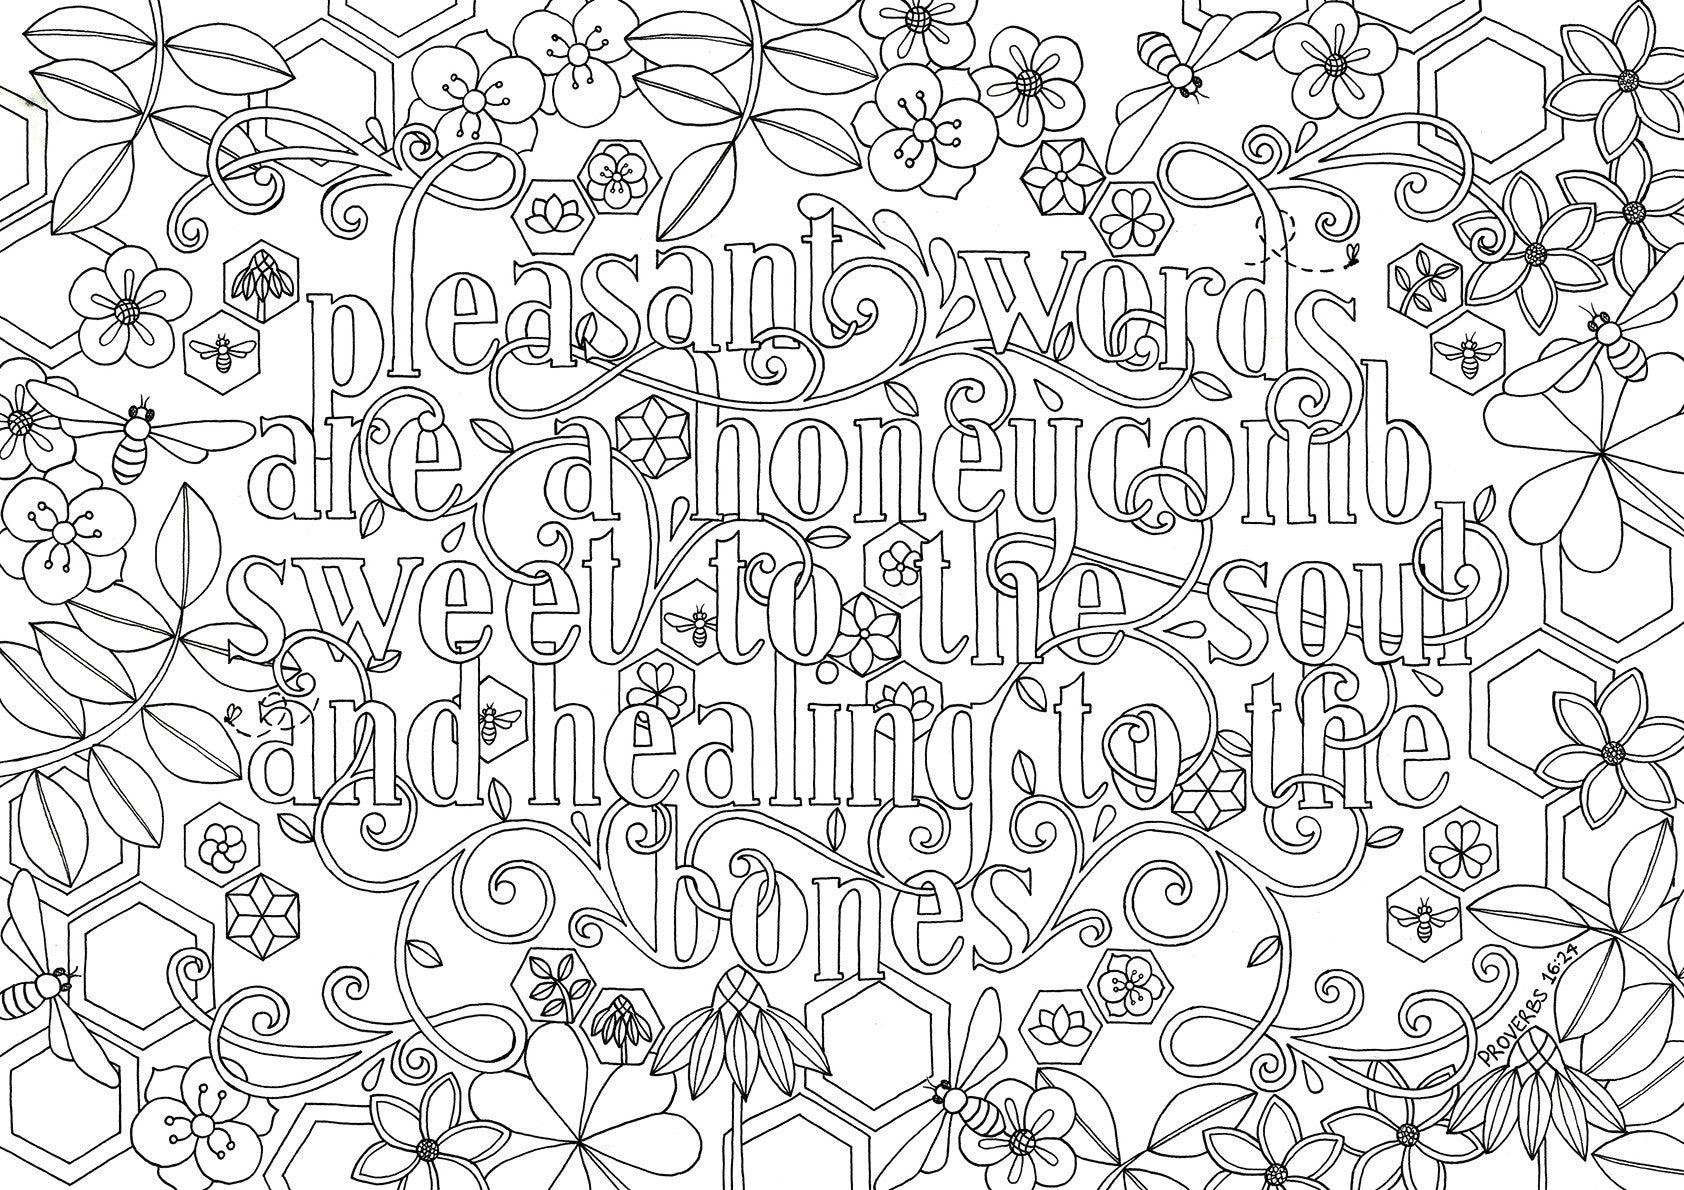 colouring in pleasant words are a honeycomb proverbs 1624